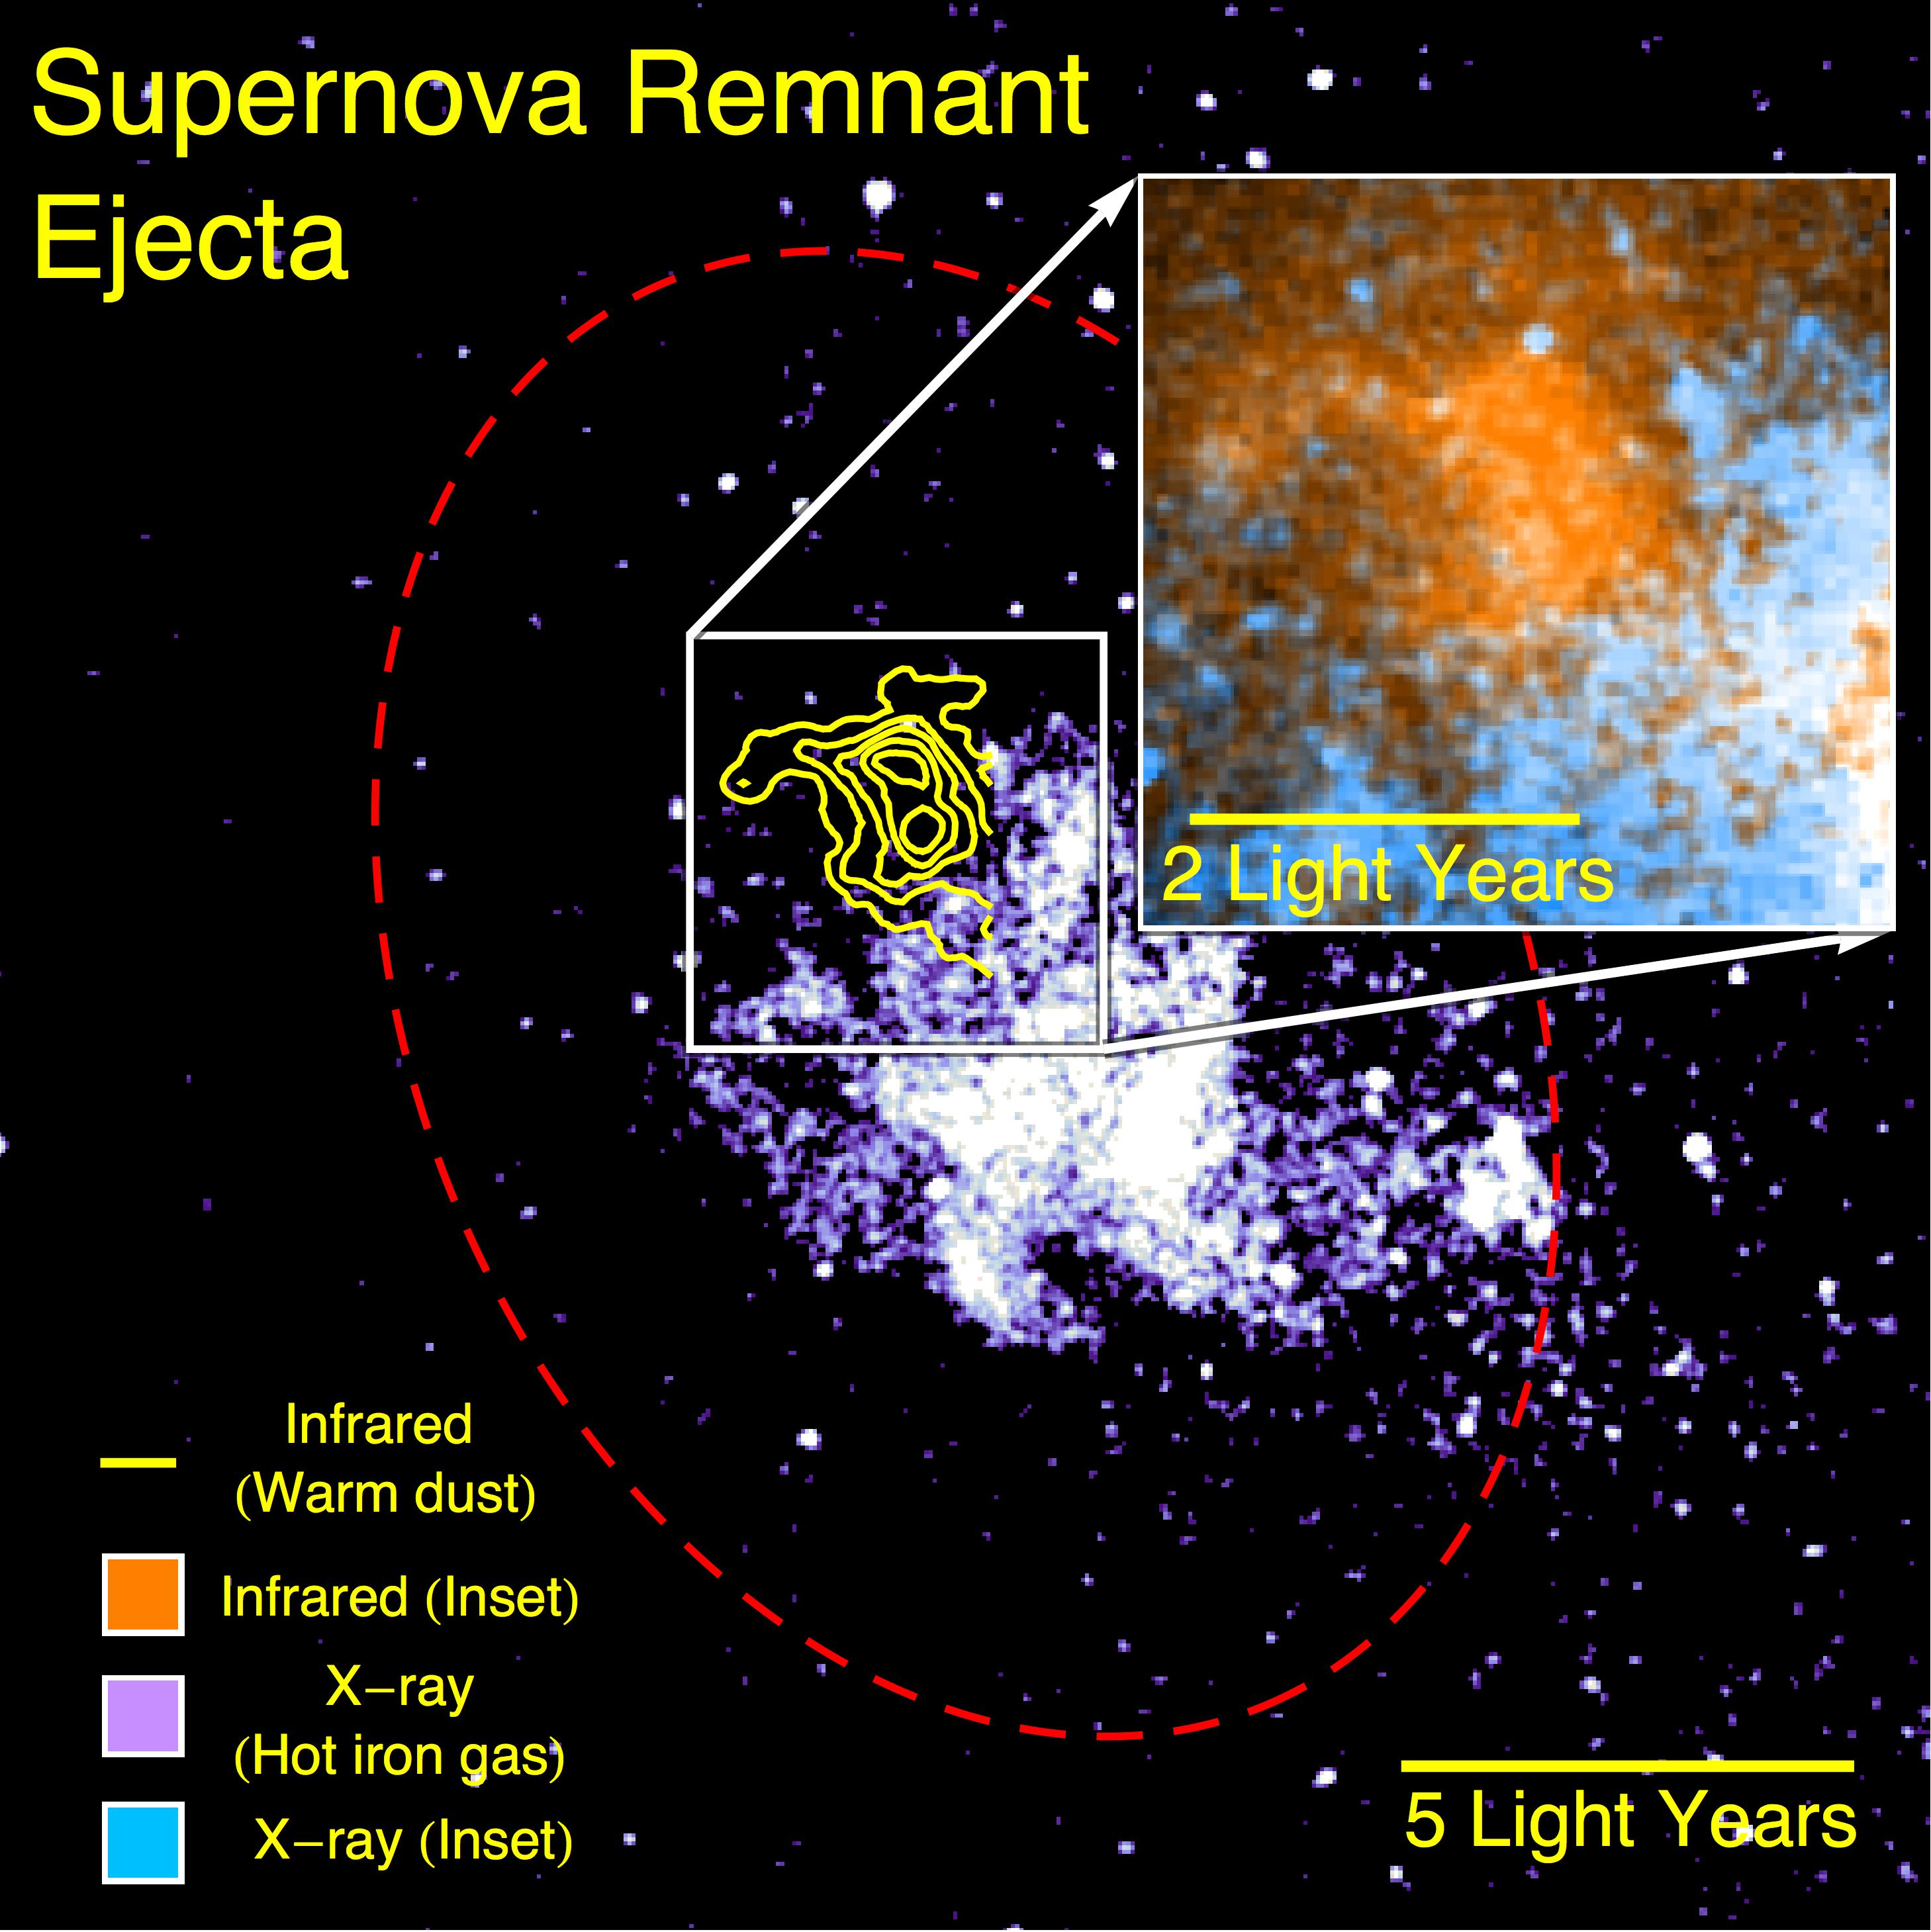 SOFIA Finds Missing Link Between Supernovae and Planet Formation ...